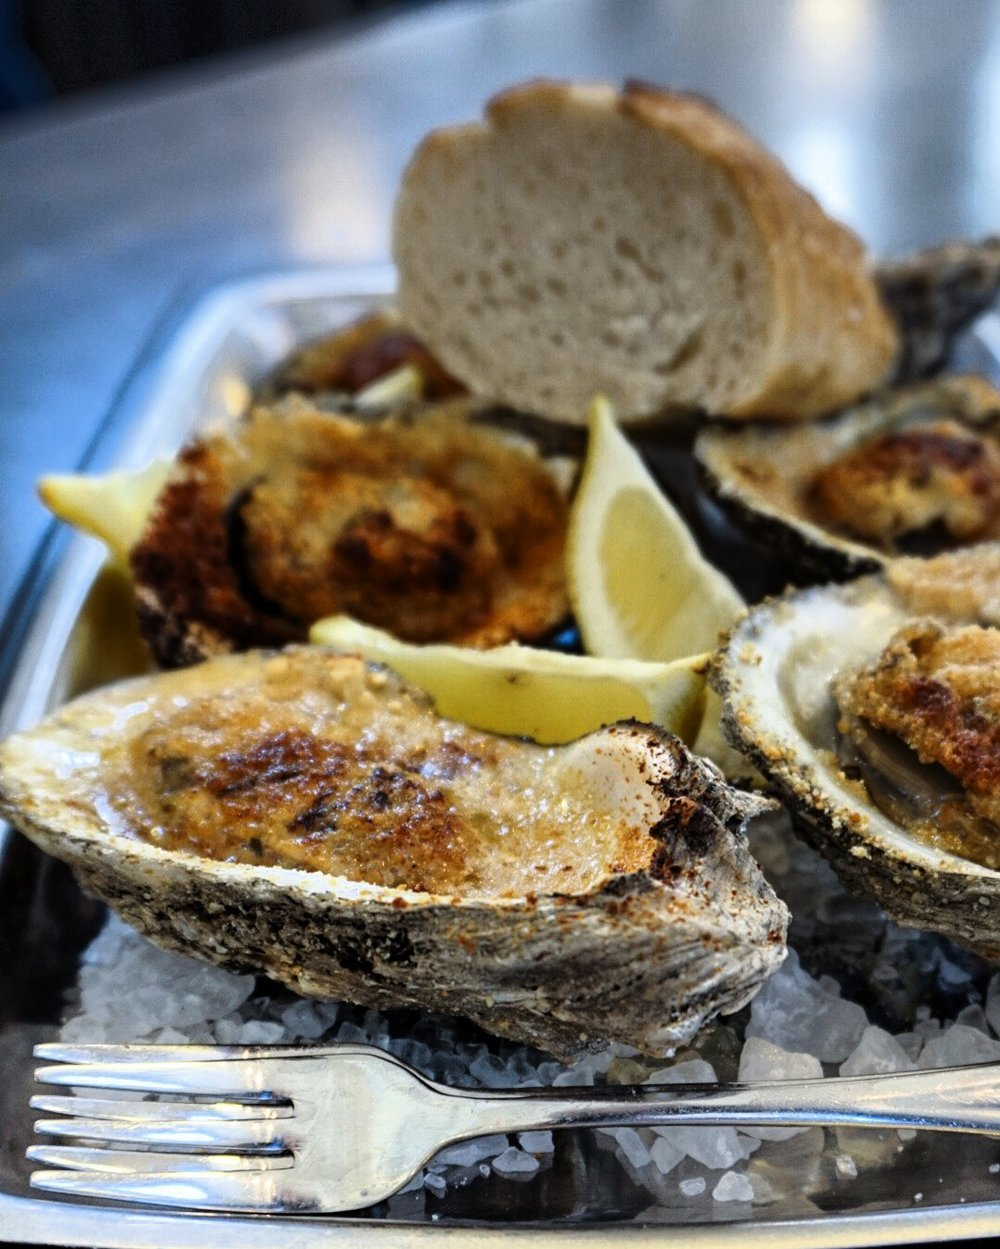 Chargrilled oysters at St Roch Market, New Orleans